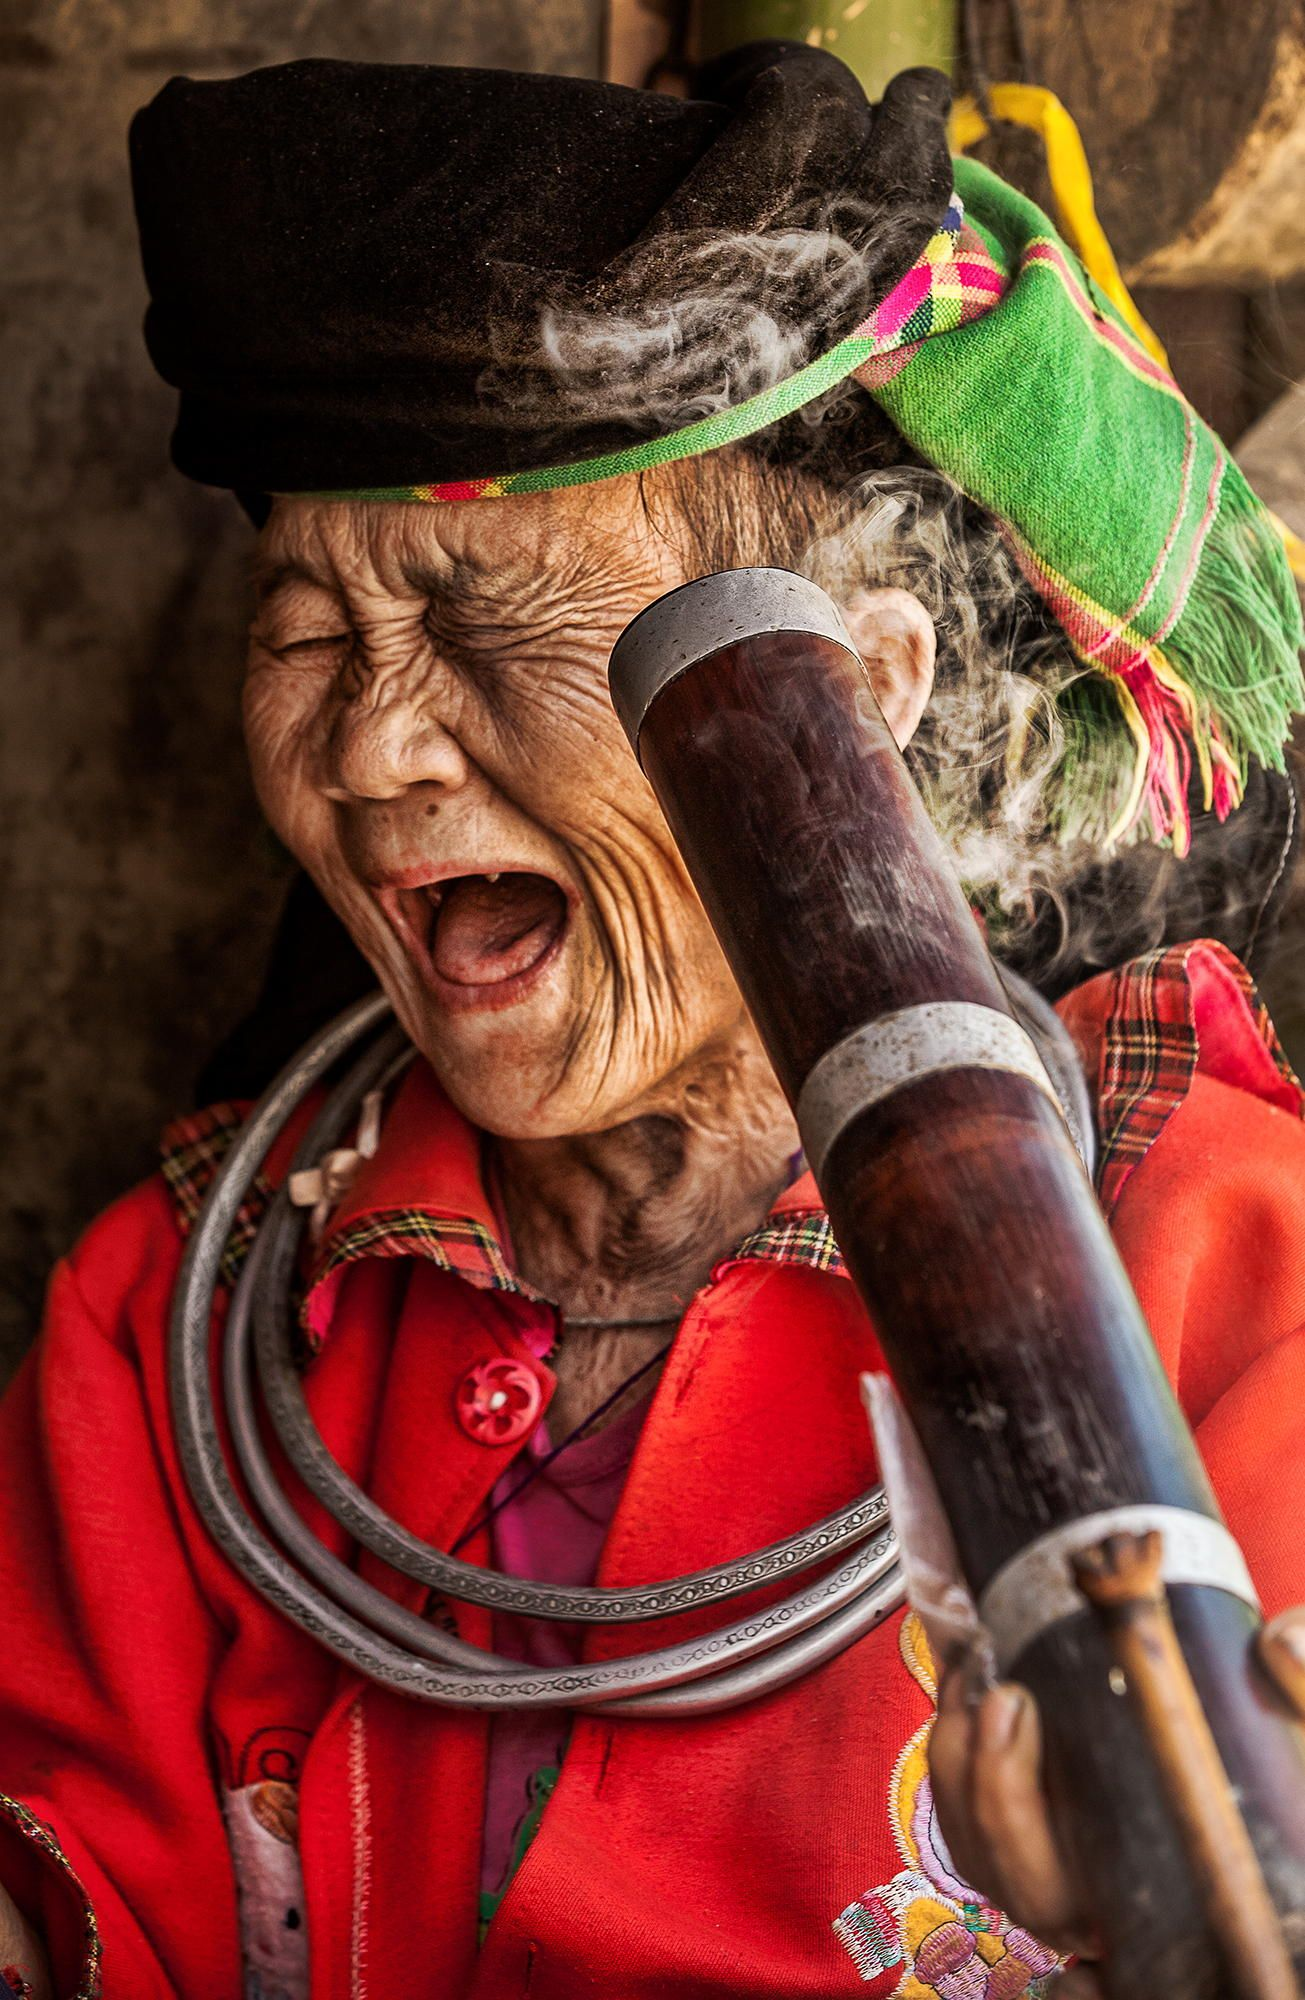 Smoking class with Hmong by Réhahn Photography on 500px